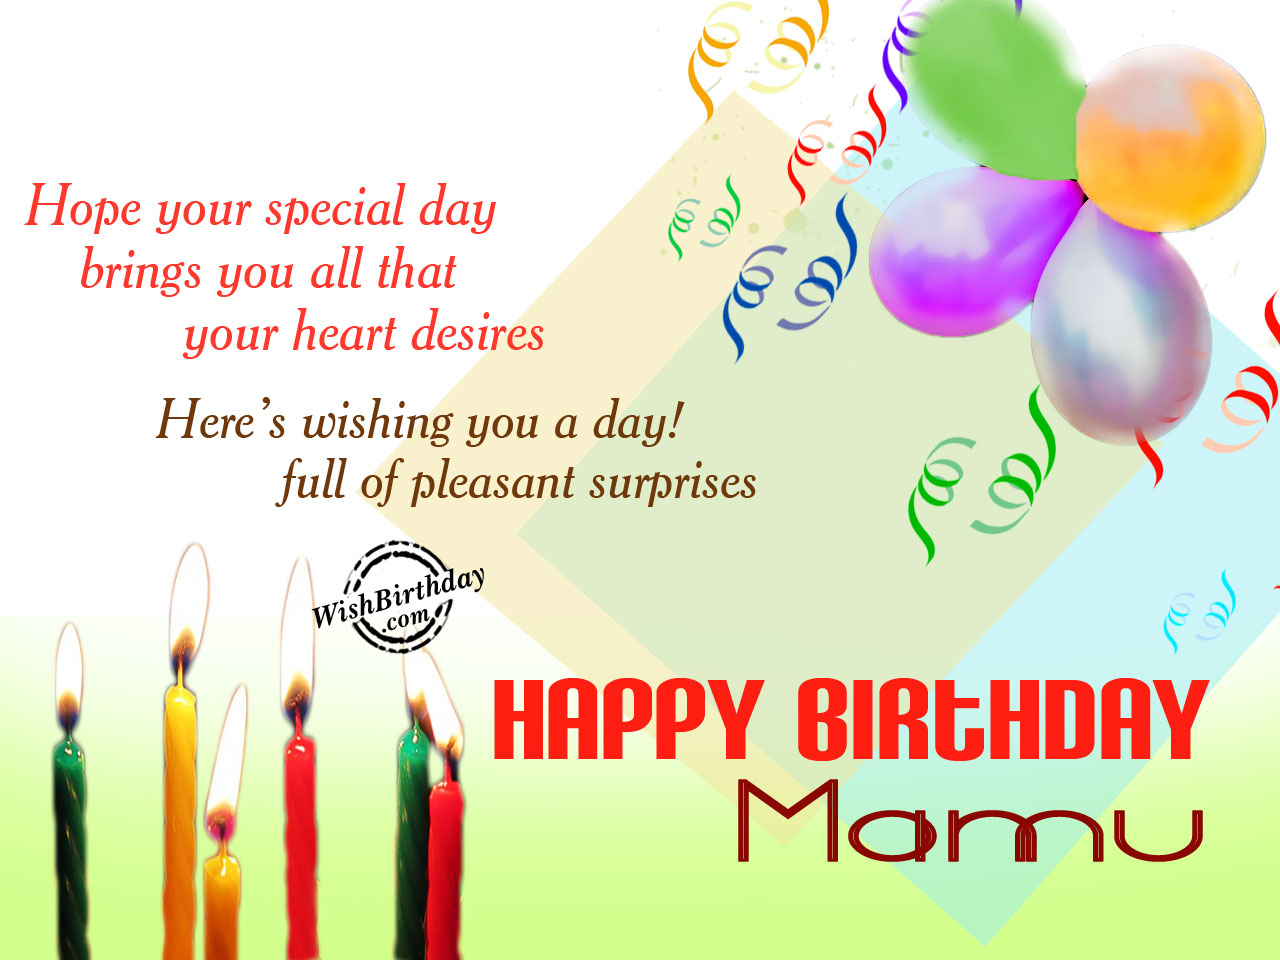 Birthday wishes for mama ji birthday images pictures wishing you a very happy birthday mama ji kristyandbryce Images